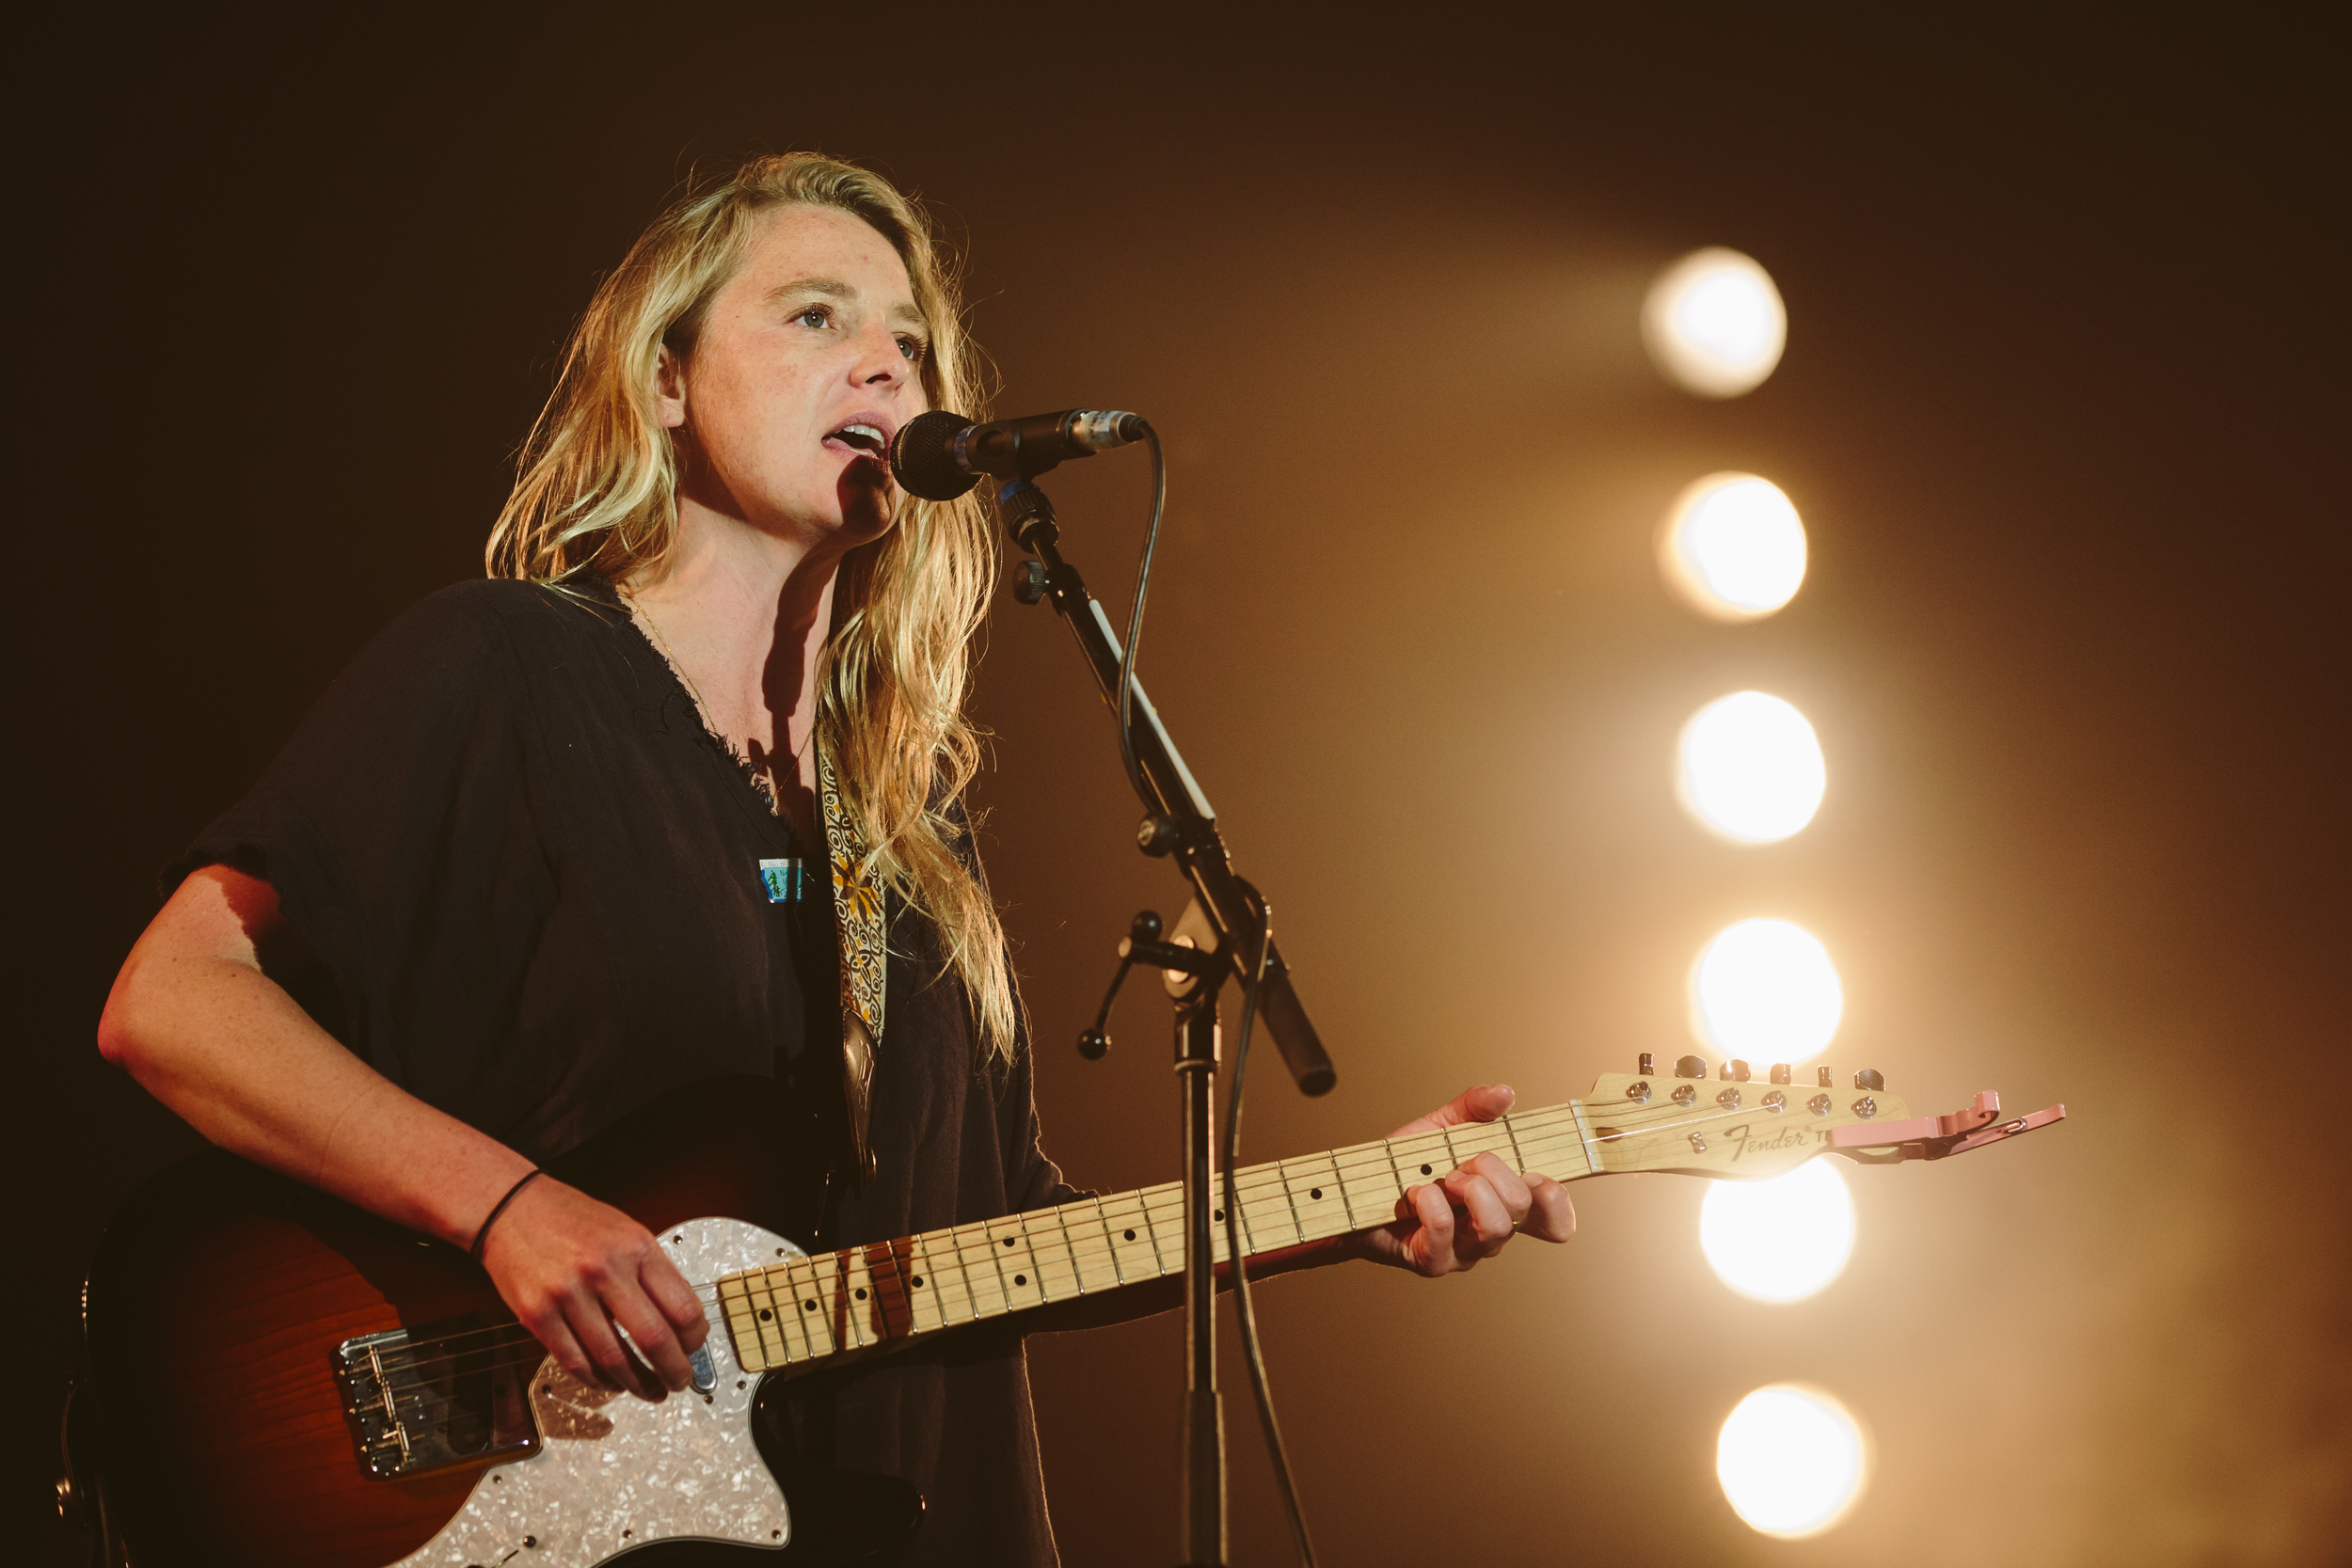 IoW16_Fri_Lissie_BigTop_Sara_Lincoln_Photography_Press-3.jpg